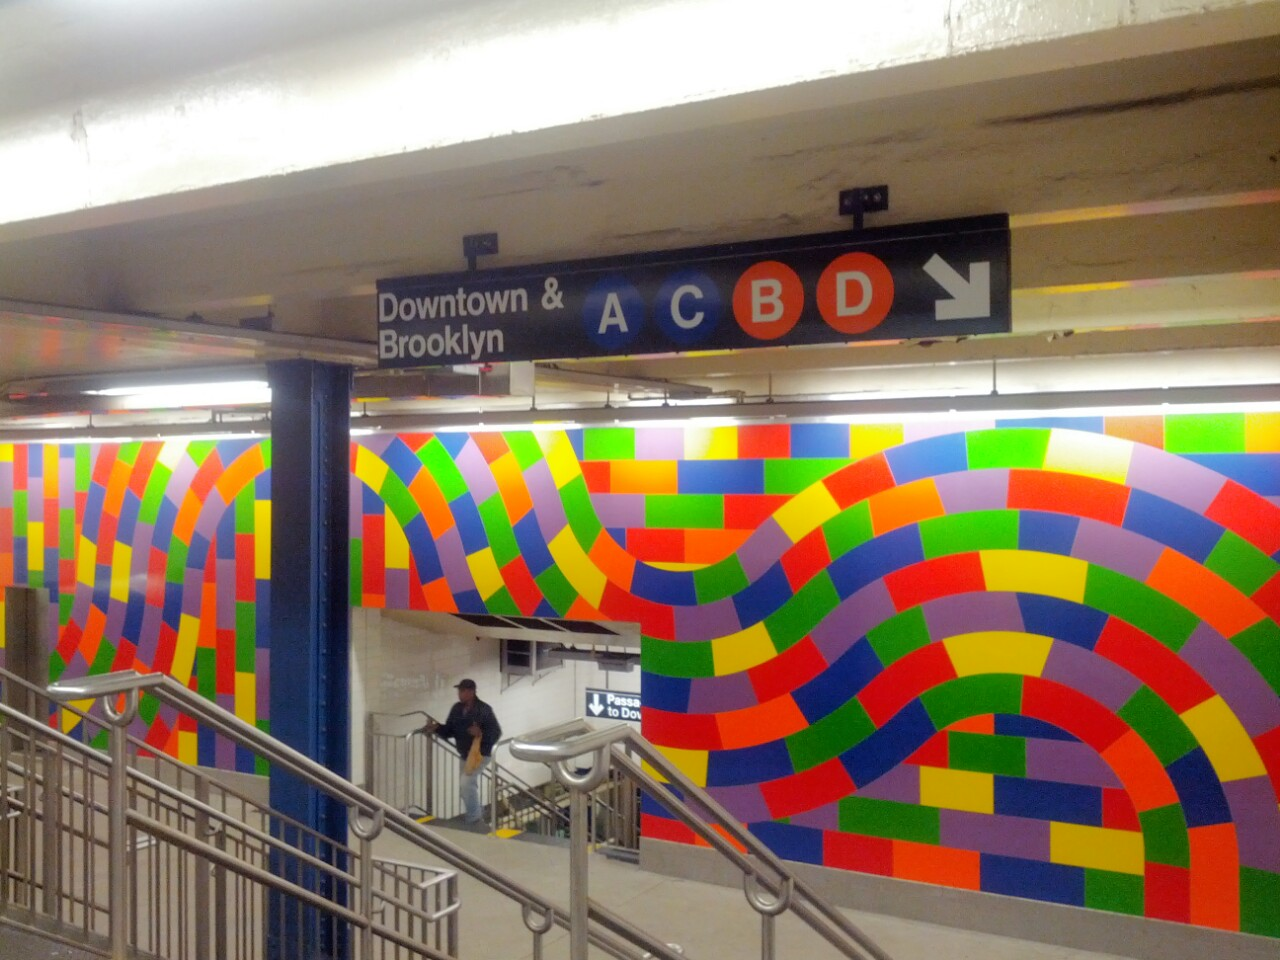 Was somehow unaware of this Sol LeWitt wall at 59th Street!  The things you learn when you go uptown.